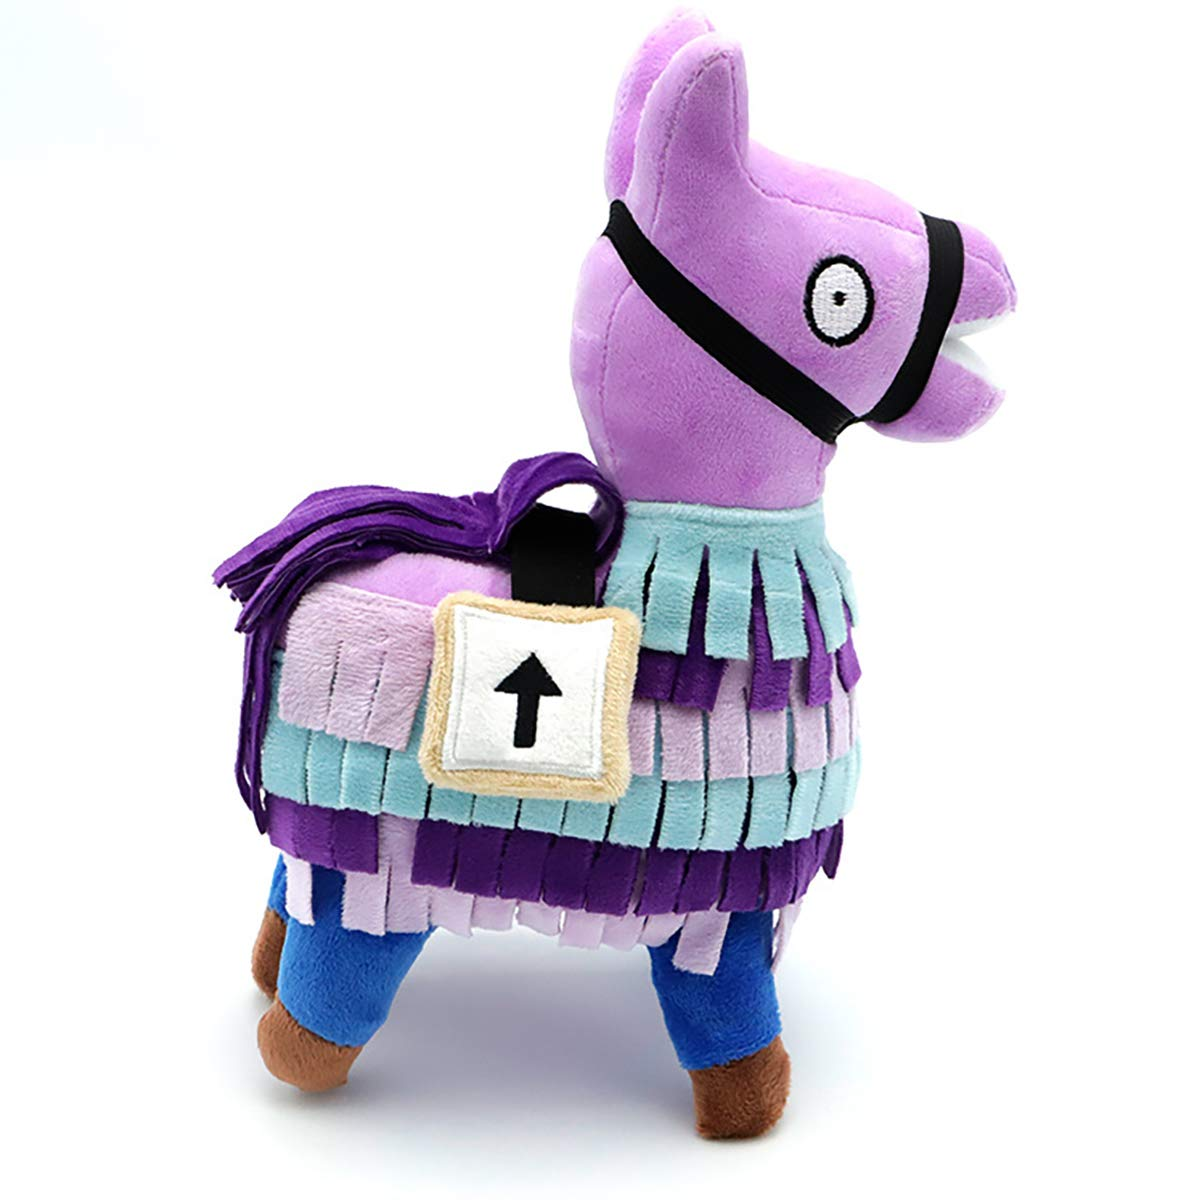 Wsnyy Loot Supply Llama Plush Stuffed Toys Doll for Great Game Fans, Soft Firgure Video Game Troll Stash Animal Alpaca Girls for Kids,27CM/10.6 inch by Wsnyy